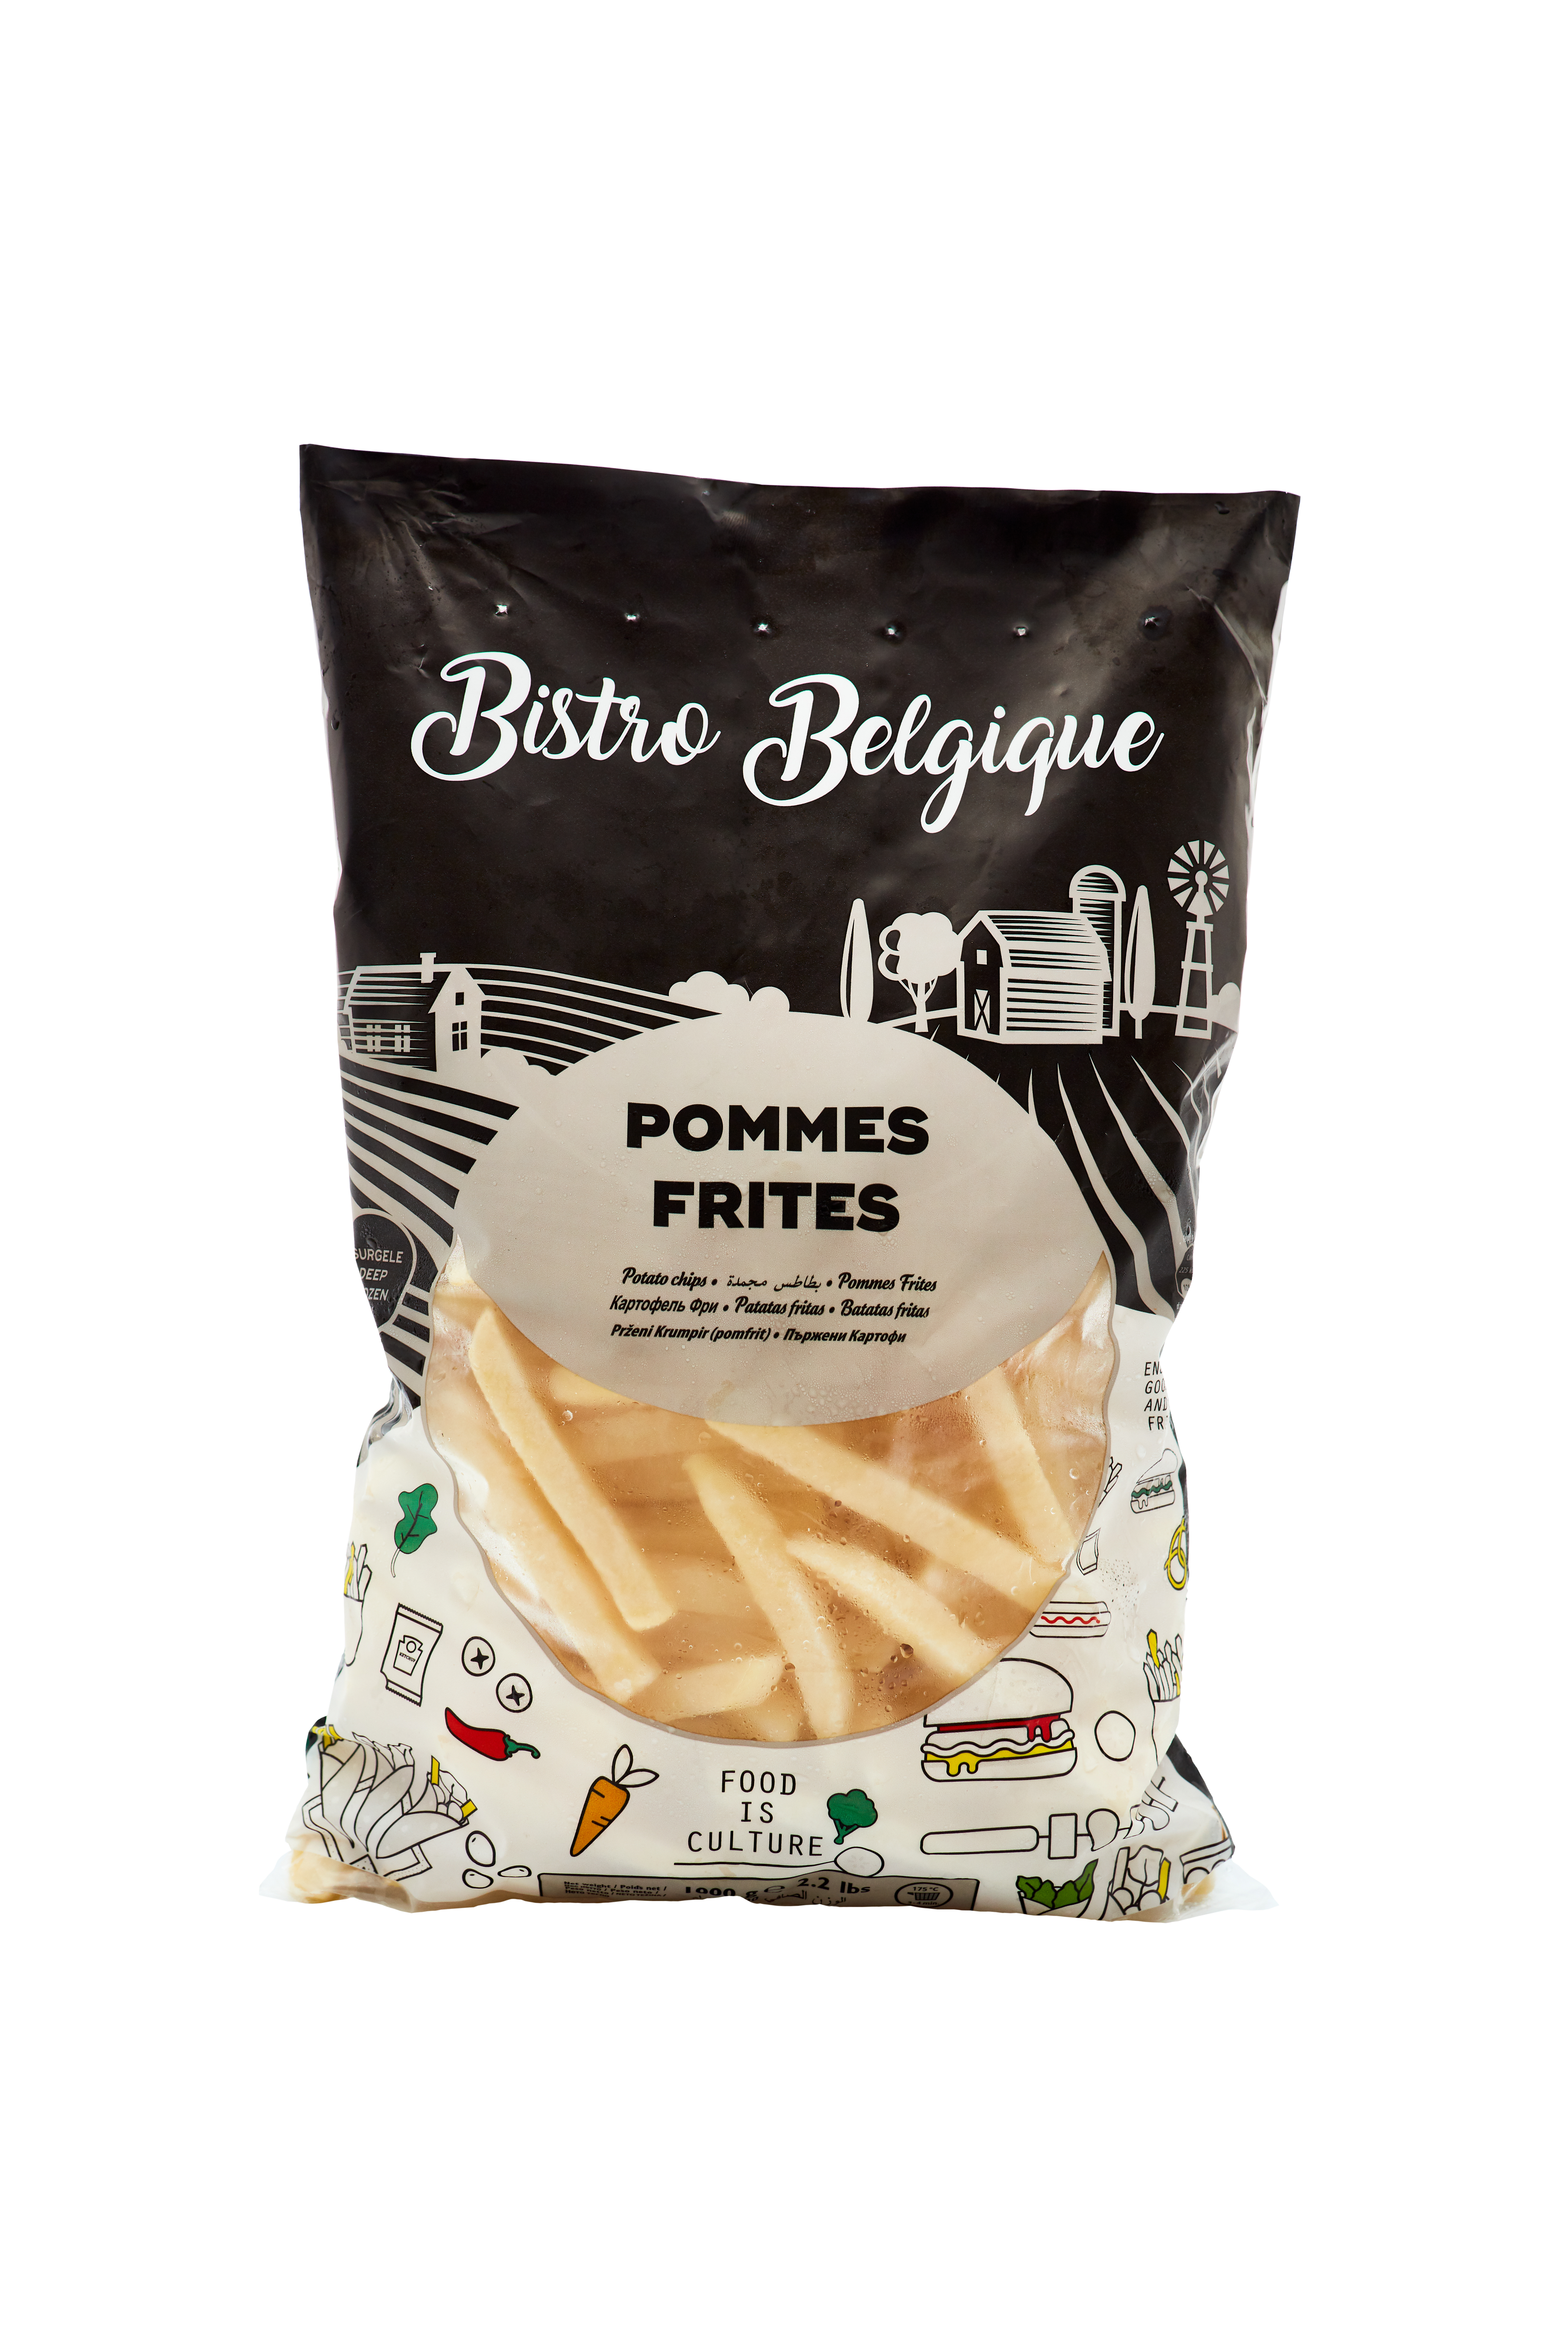 French fries 14x14mm packaging Bistro Belgique brand